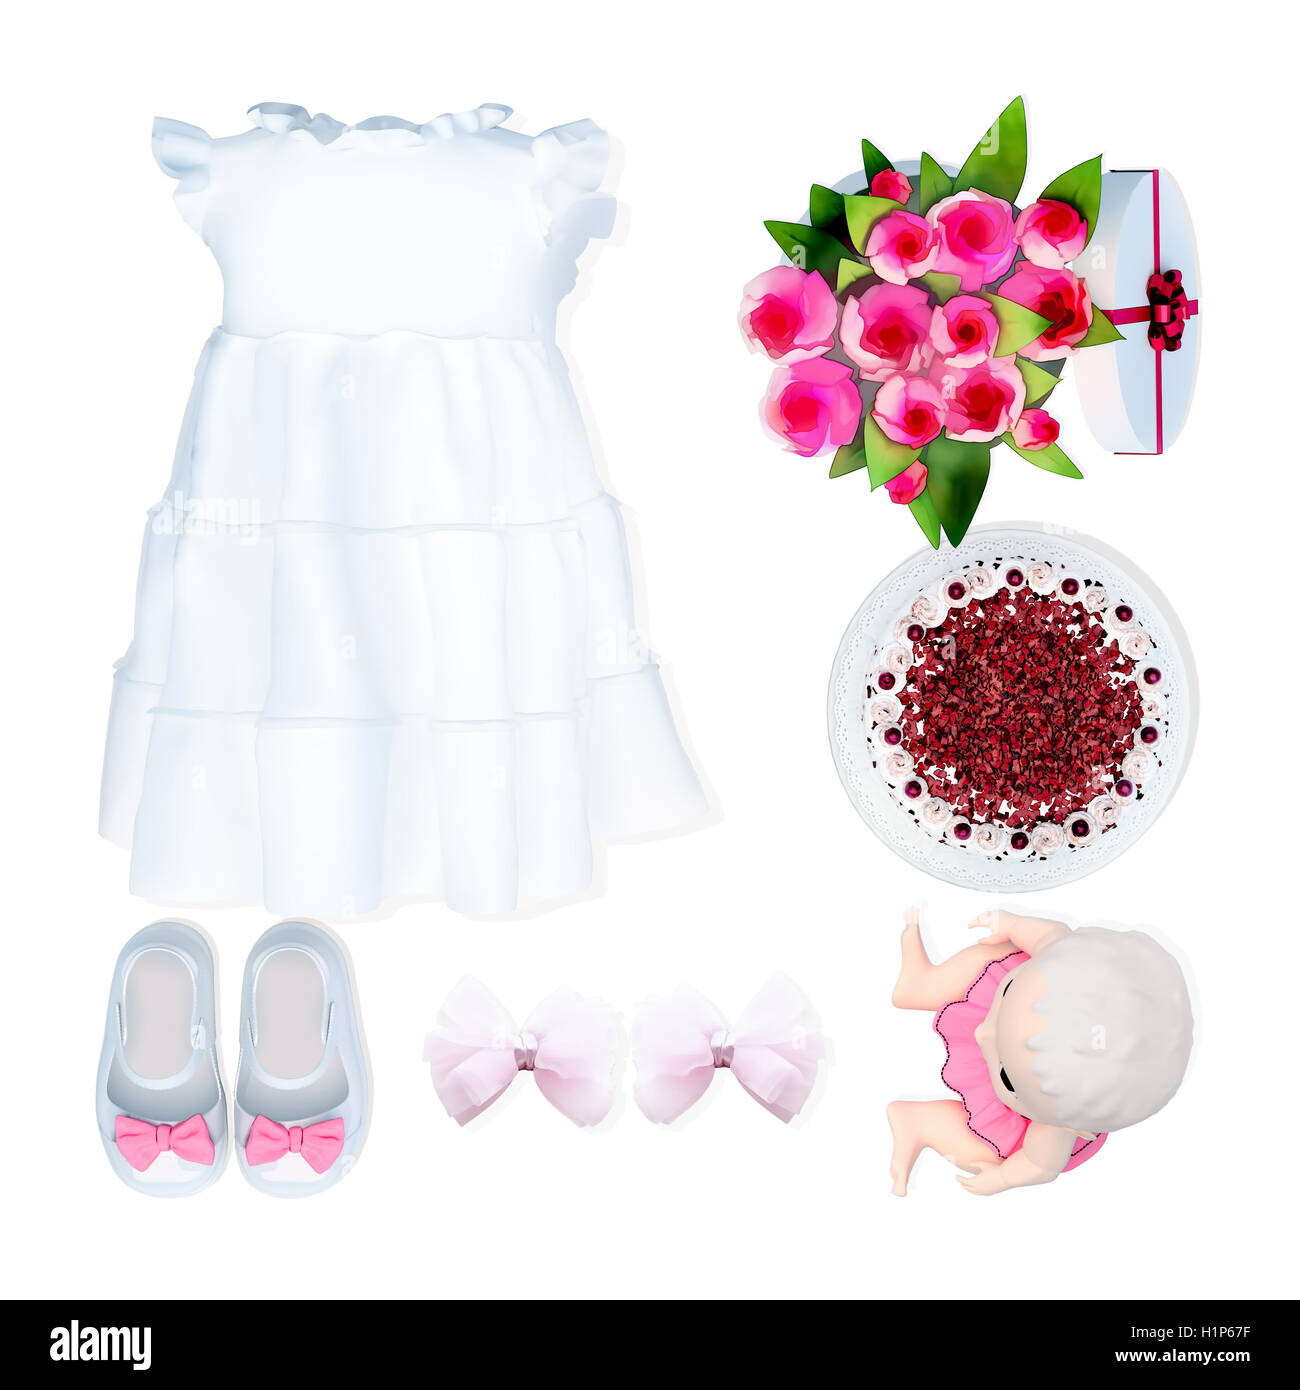 Baby dress and accessories on white background. Birthday. - Stock Image